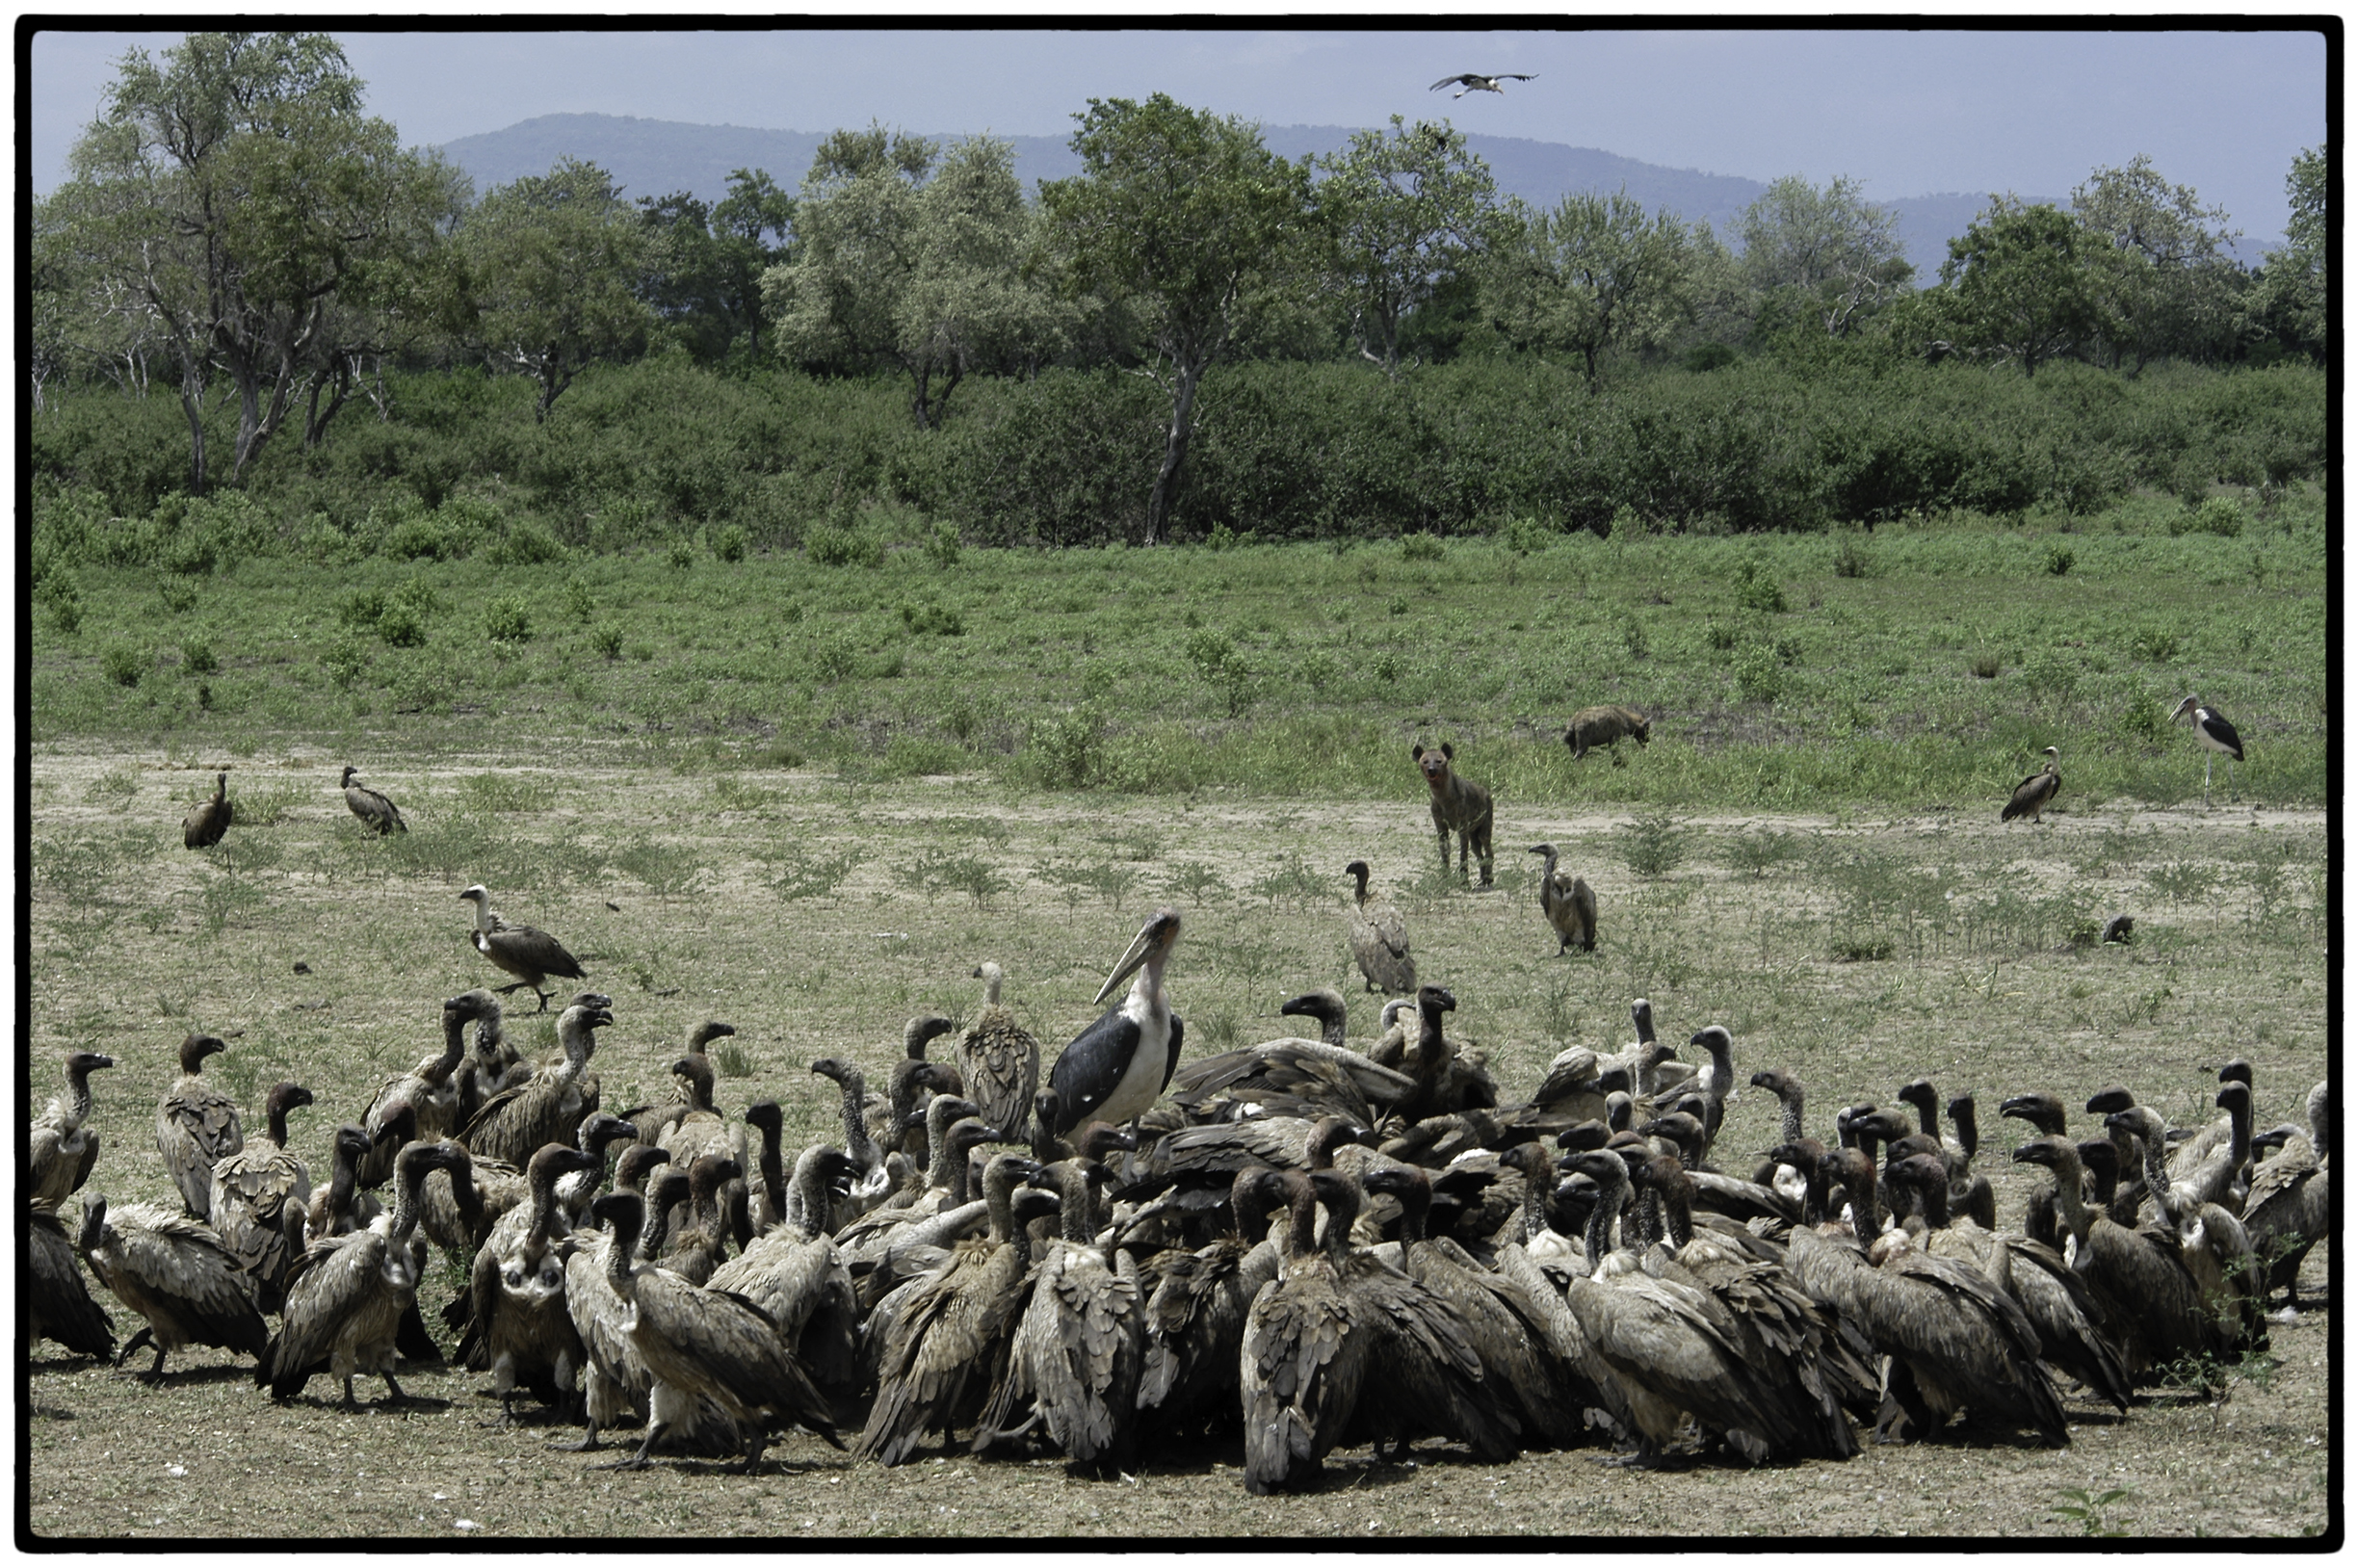 Vultures and hyenas, Tanzania, Africa